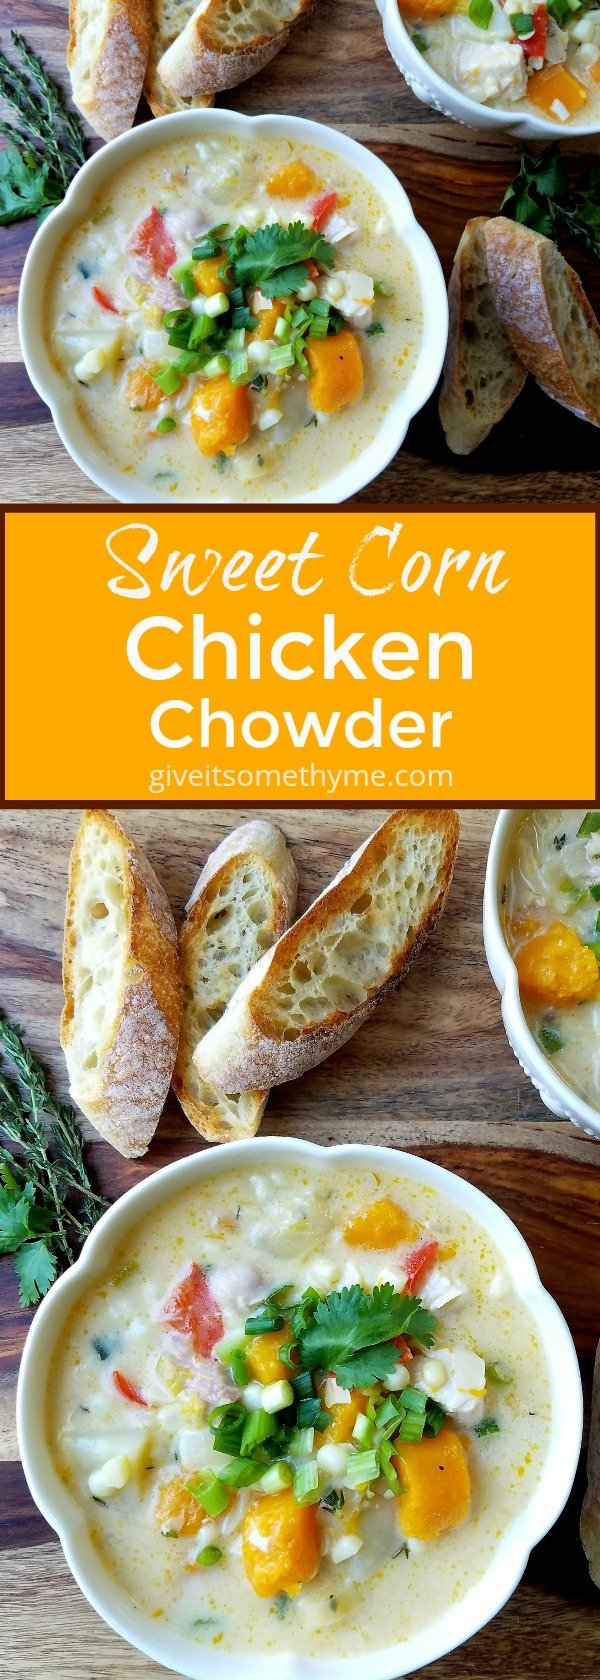 Sweet Corn Chicken Chowder - Give it Some Thyme